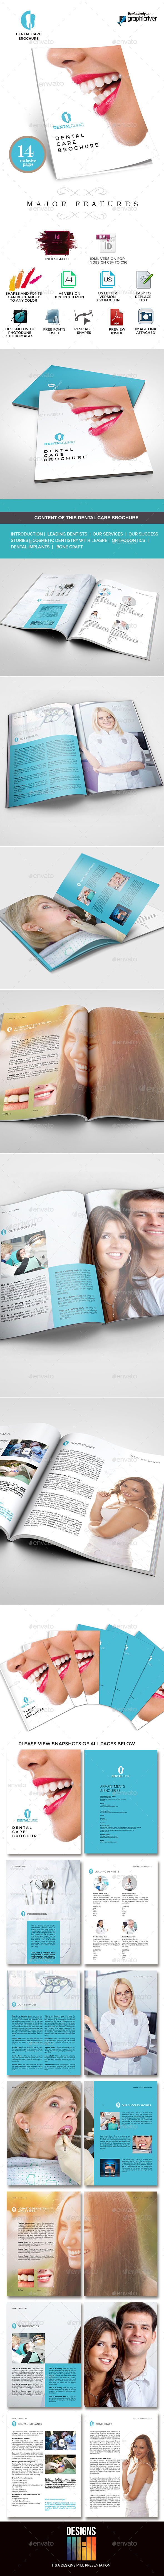 GraphicRiver Dental Clinic Services or Care Brochure 9529058